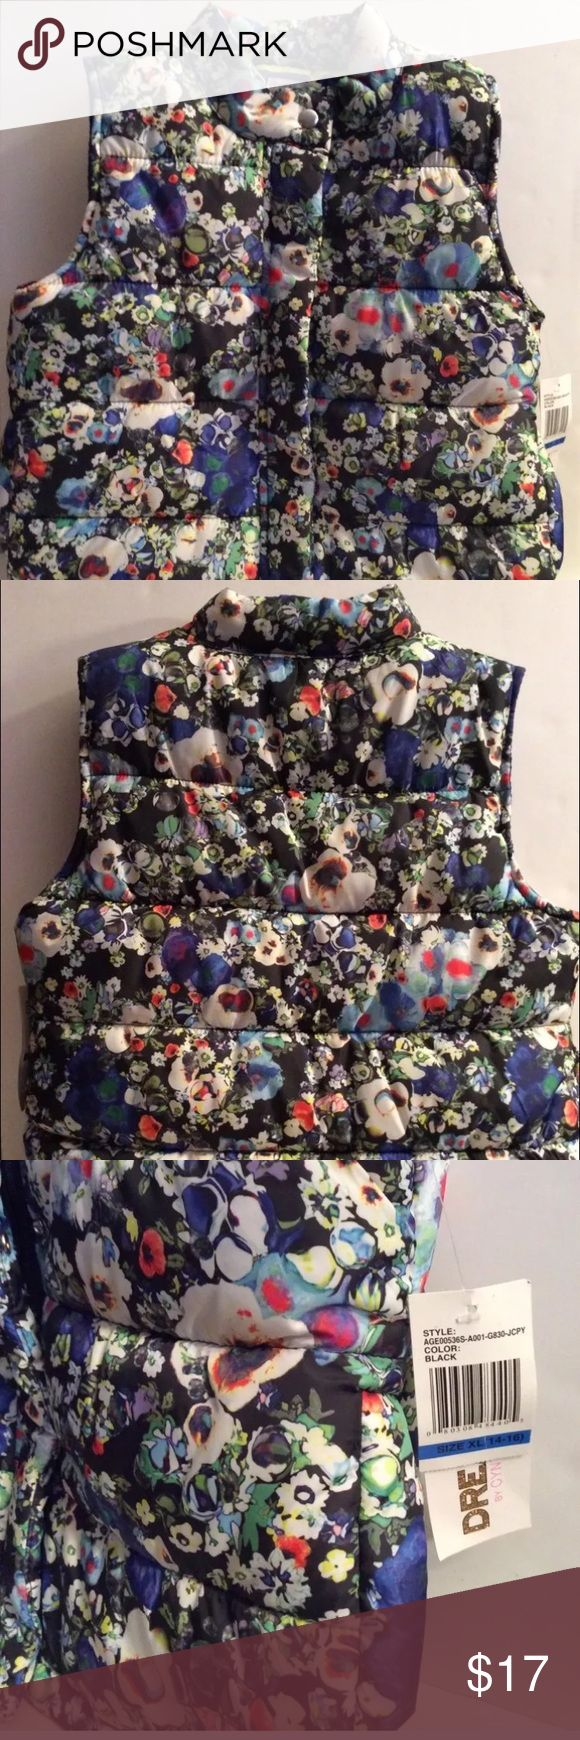 Dream by Cynthia Rowley multi colored vest NWT Awesome floral print - puffy vest with tags Cynthia Rowley Jackets & Coats Vests